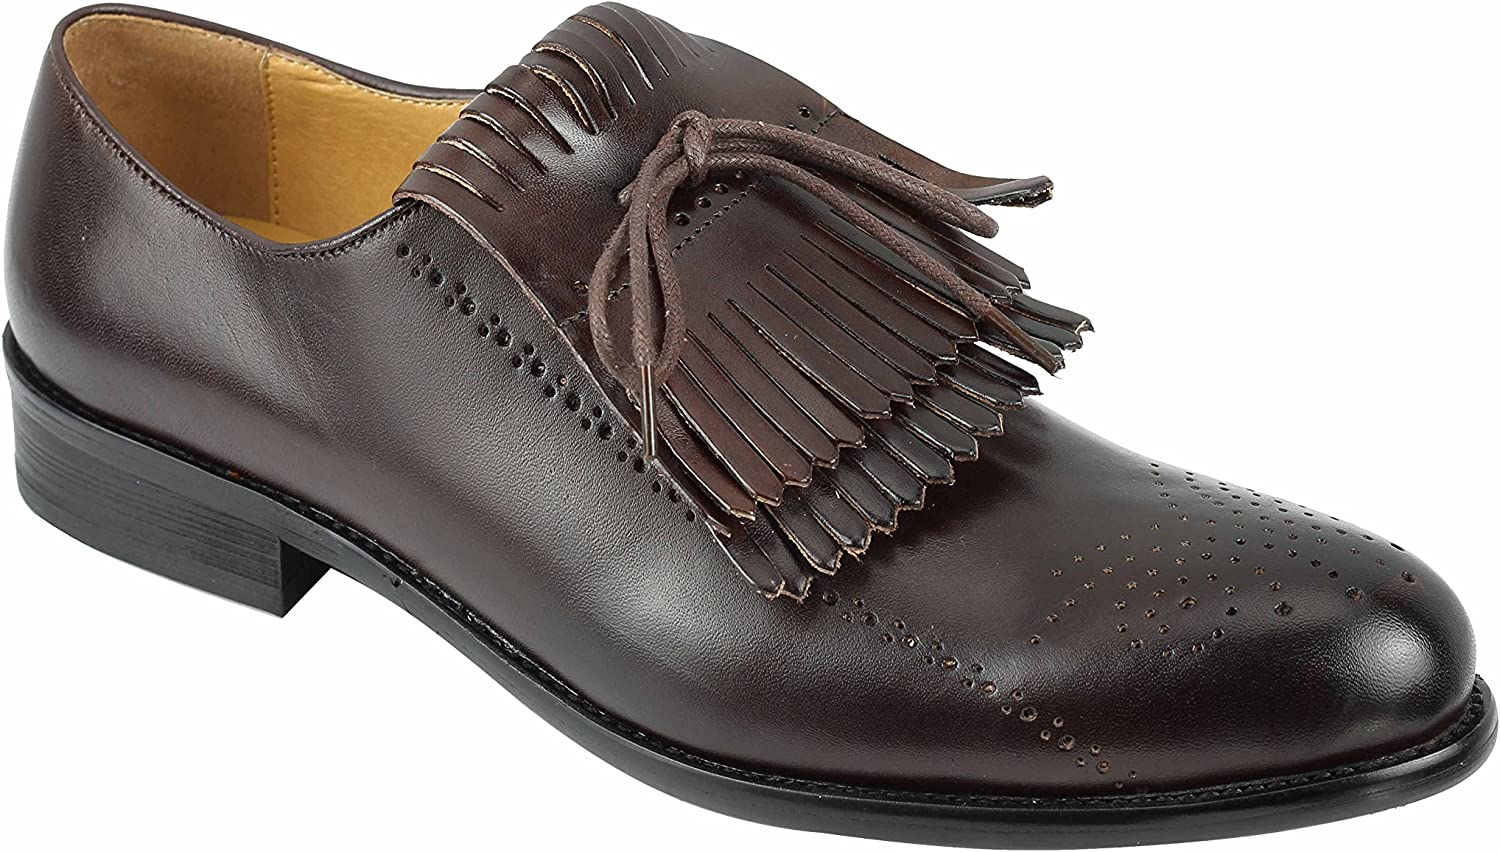 Men's Black Brown Maroon Leather Detachable Fringed Vintage Lace up Oxford Smart Evening Dress shoes